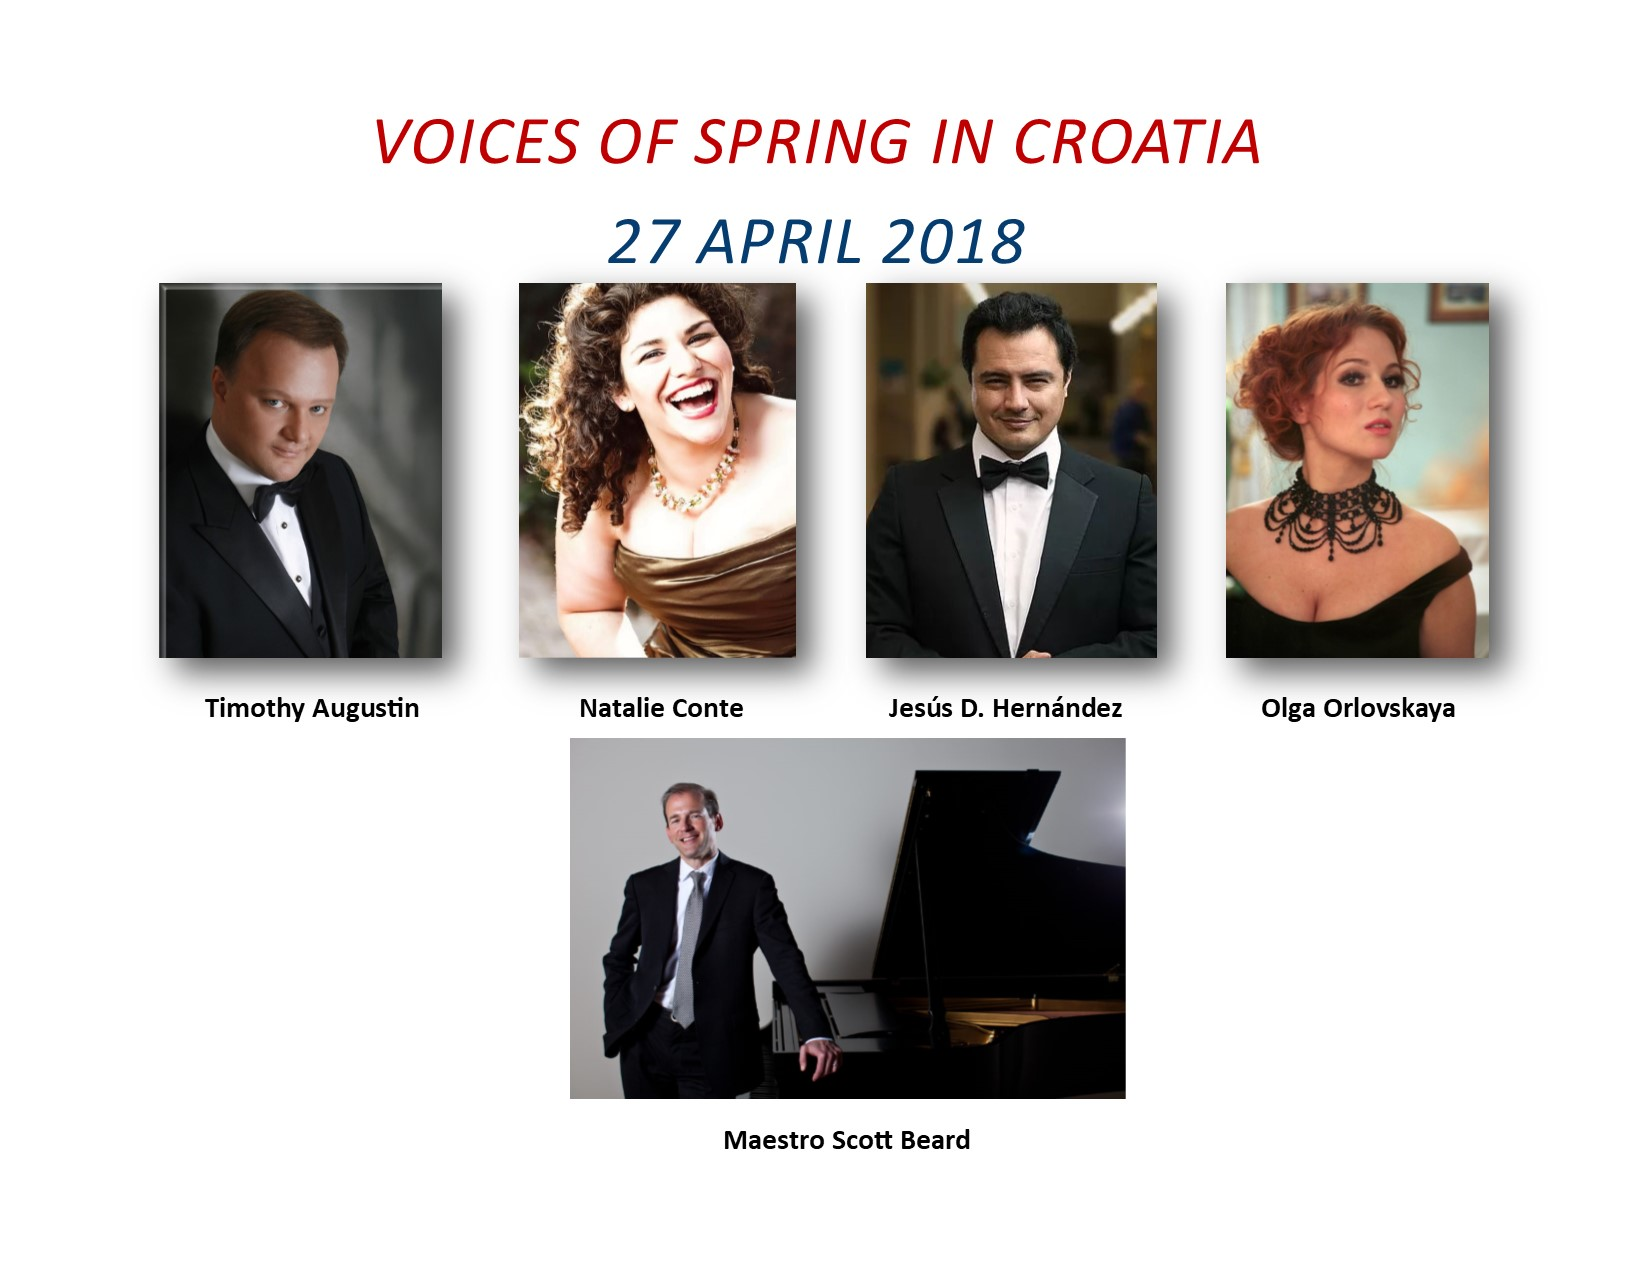 Voices of Spring in Croatia - Under the Gracious Patronage of H.E. Pjer Šimunović, Ambassador of CroatiaFeaturing: Olga Orlovskaya and Natalie ConteAccompanied by Tenors Timothy Augustin and Jesús Daniel HernándezPiano Accompaniment and the Washington Opera Society String EnsembleConducted by Maestro Scott BeardHors d'oeuvres, Desserts, Croatian Wines and Beers Served.$110.00 - Front Reserved$80.00 - Middle Reserved$60.00 - Rear Unreserved~A Michael J. Reilly Production